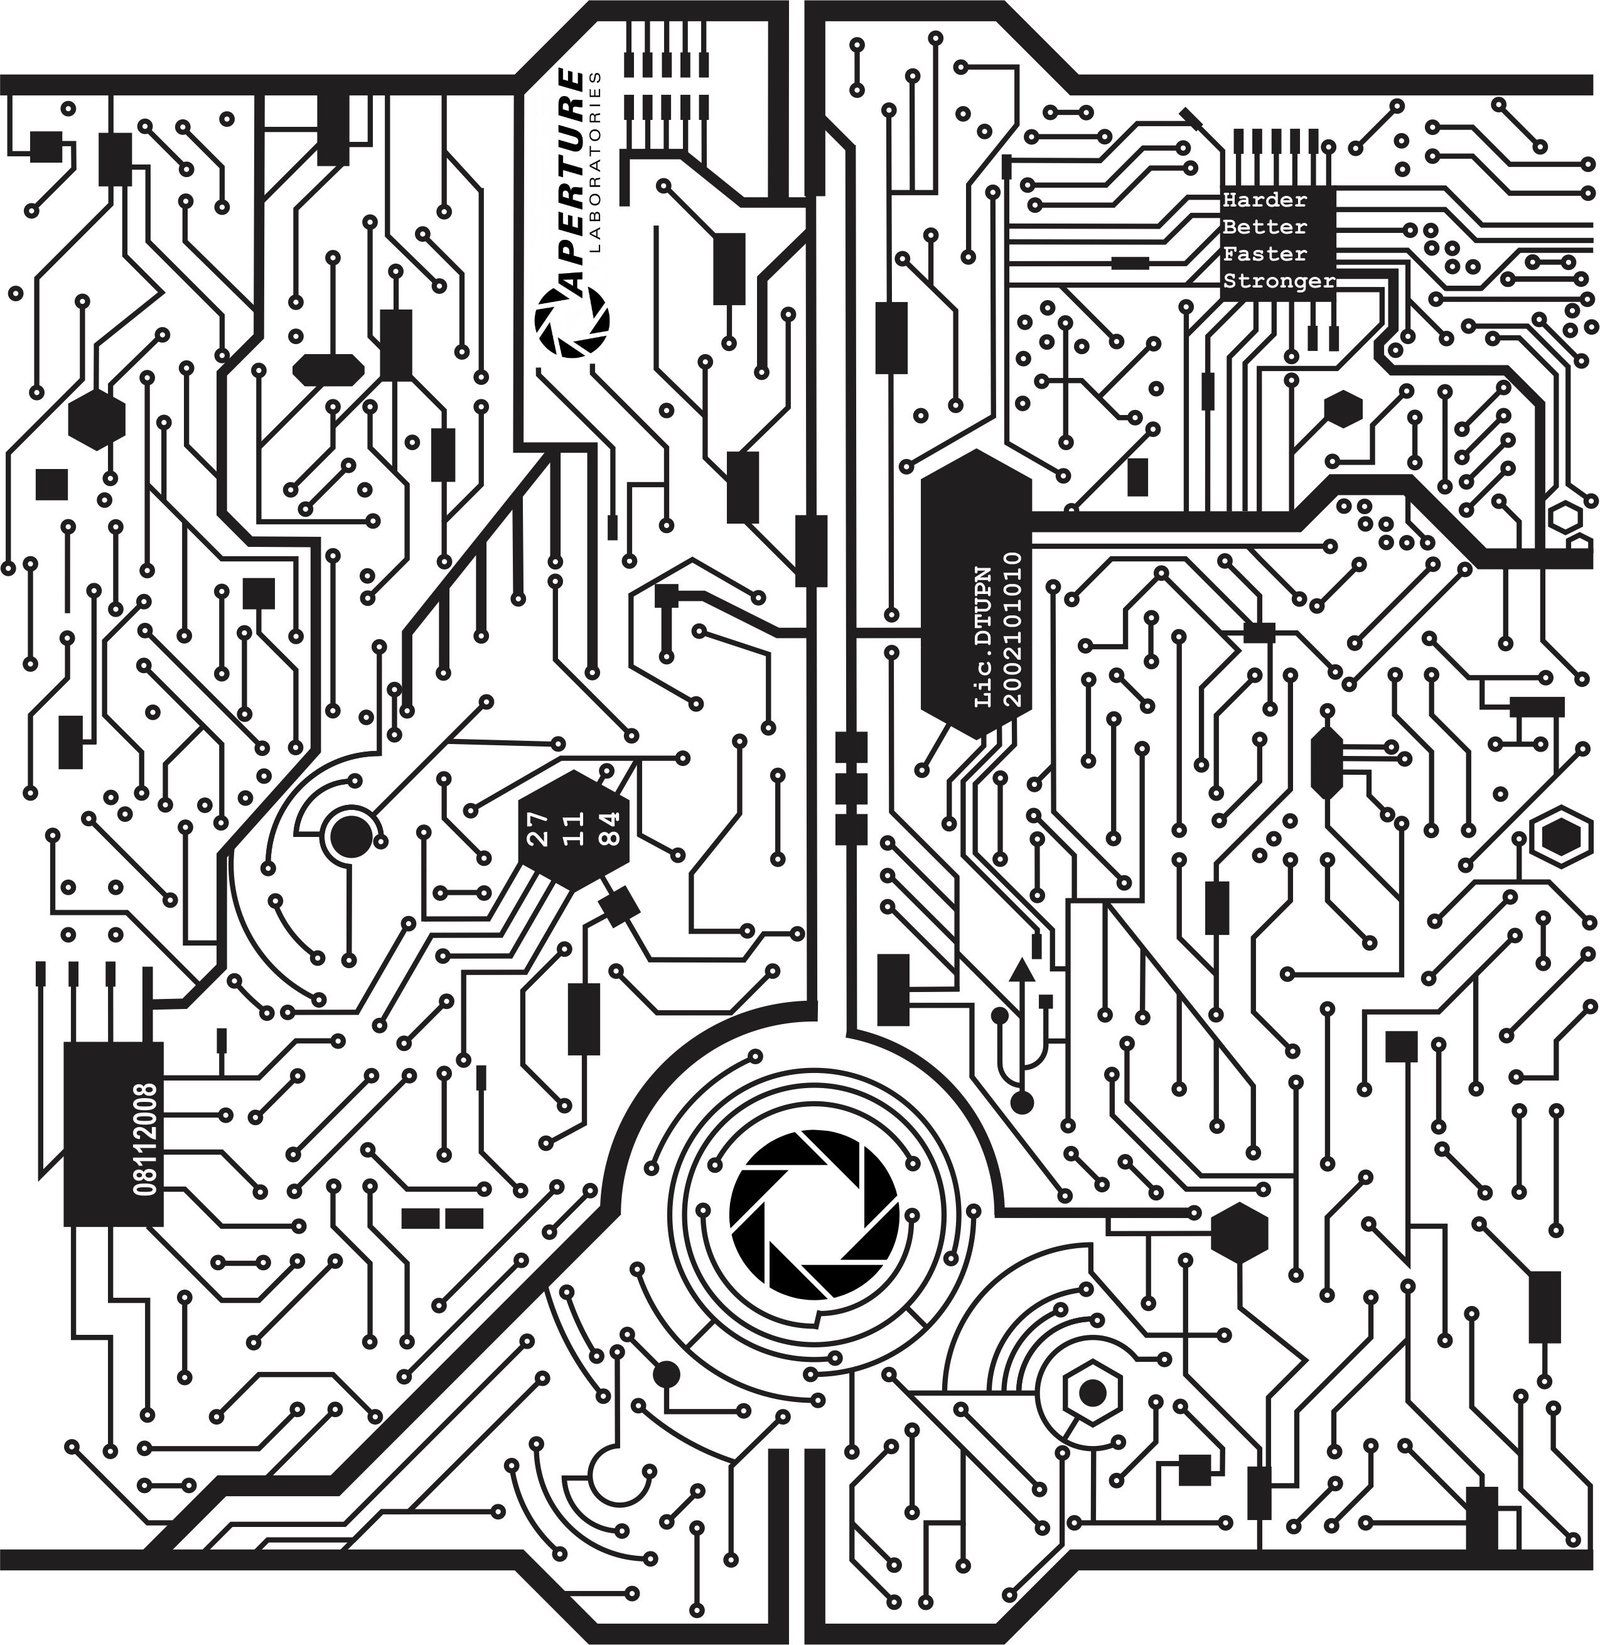 circuit tattoo  sketch  by kmykse84 deviantart com on  deviantart